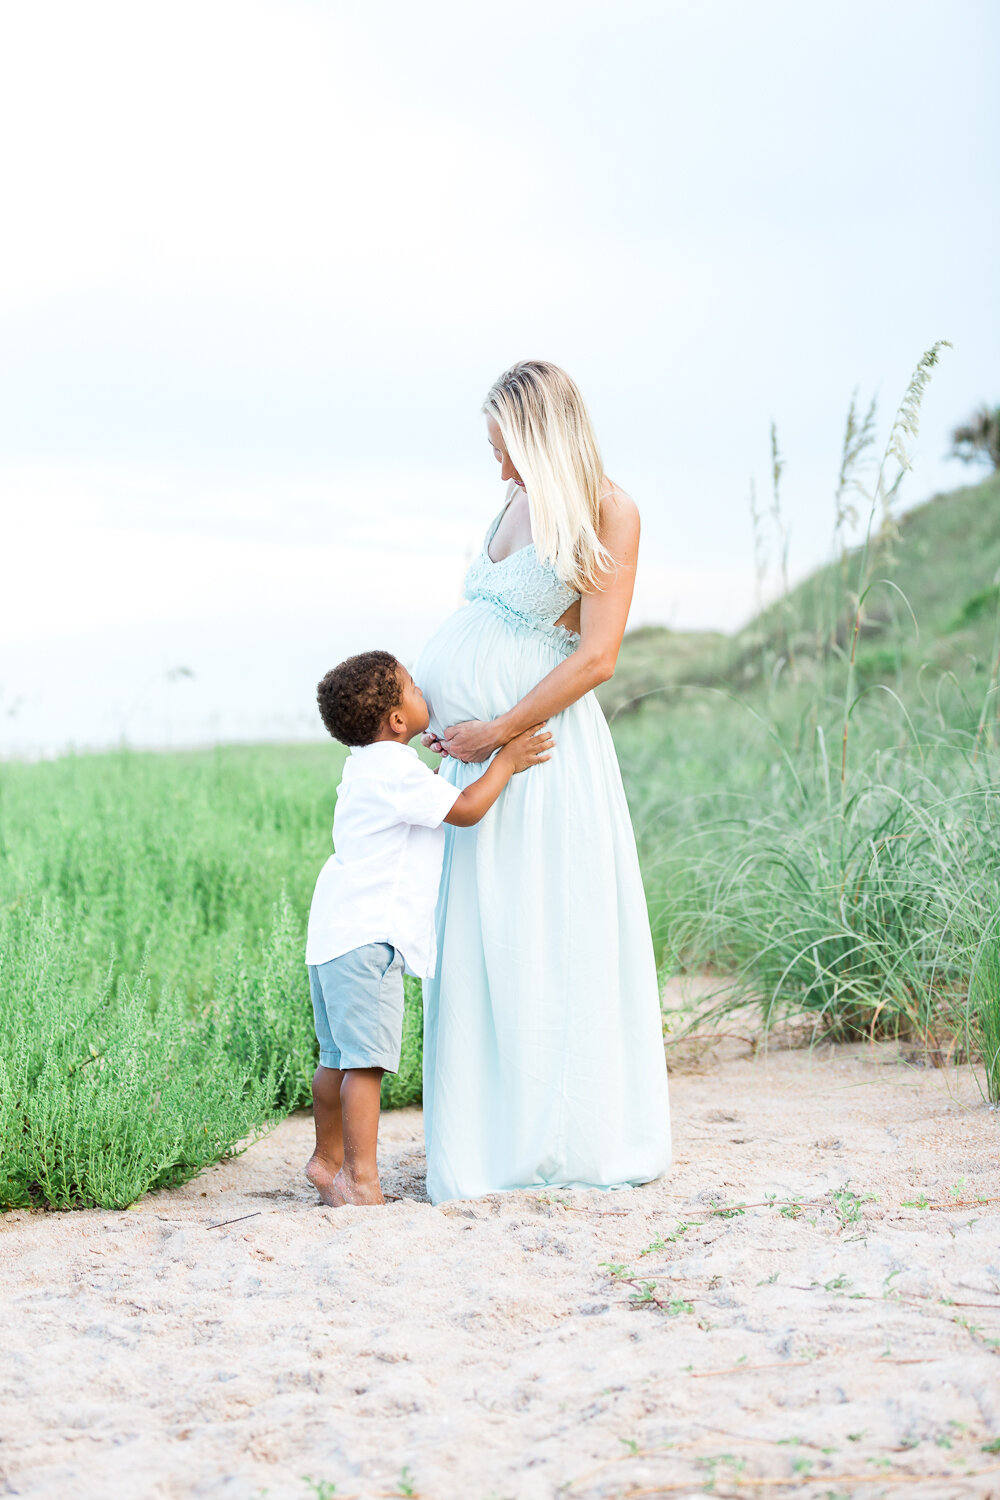 Maternity session in Guana beach - one of my favorite photoshoot location in town